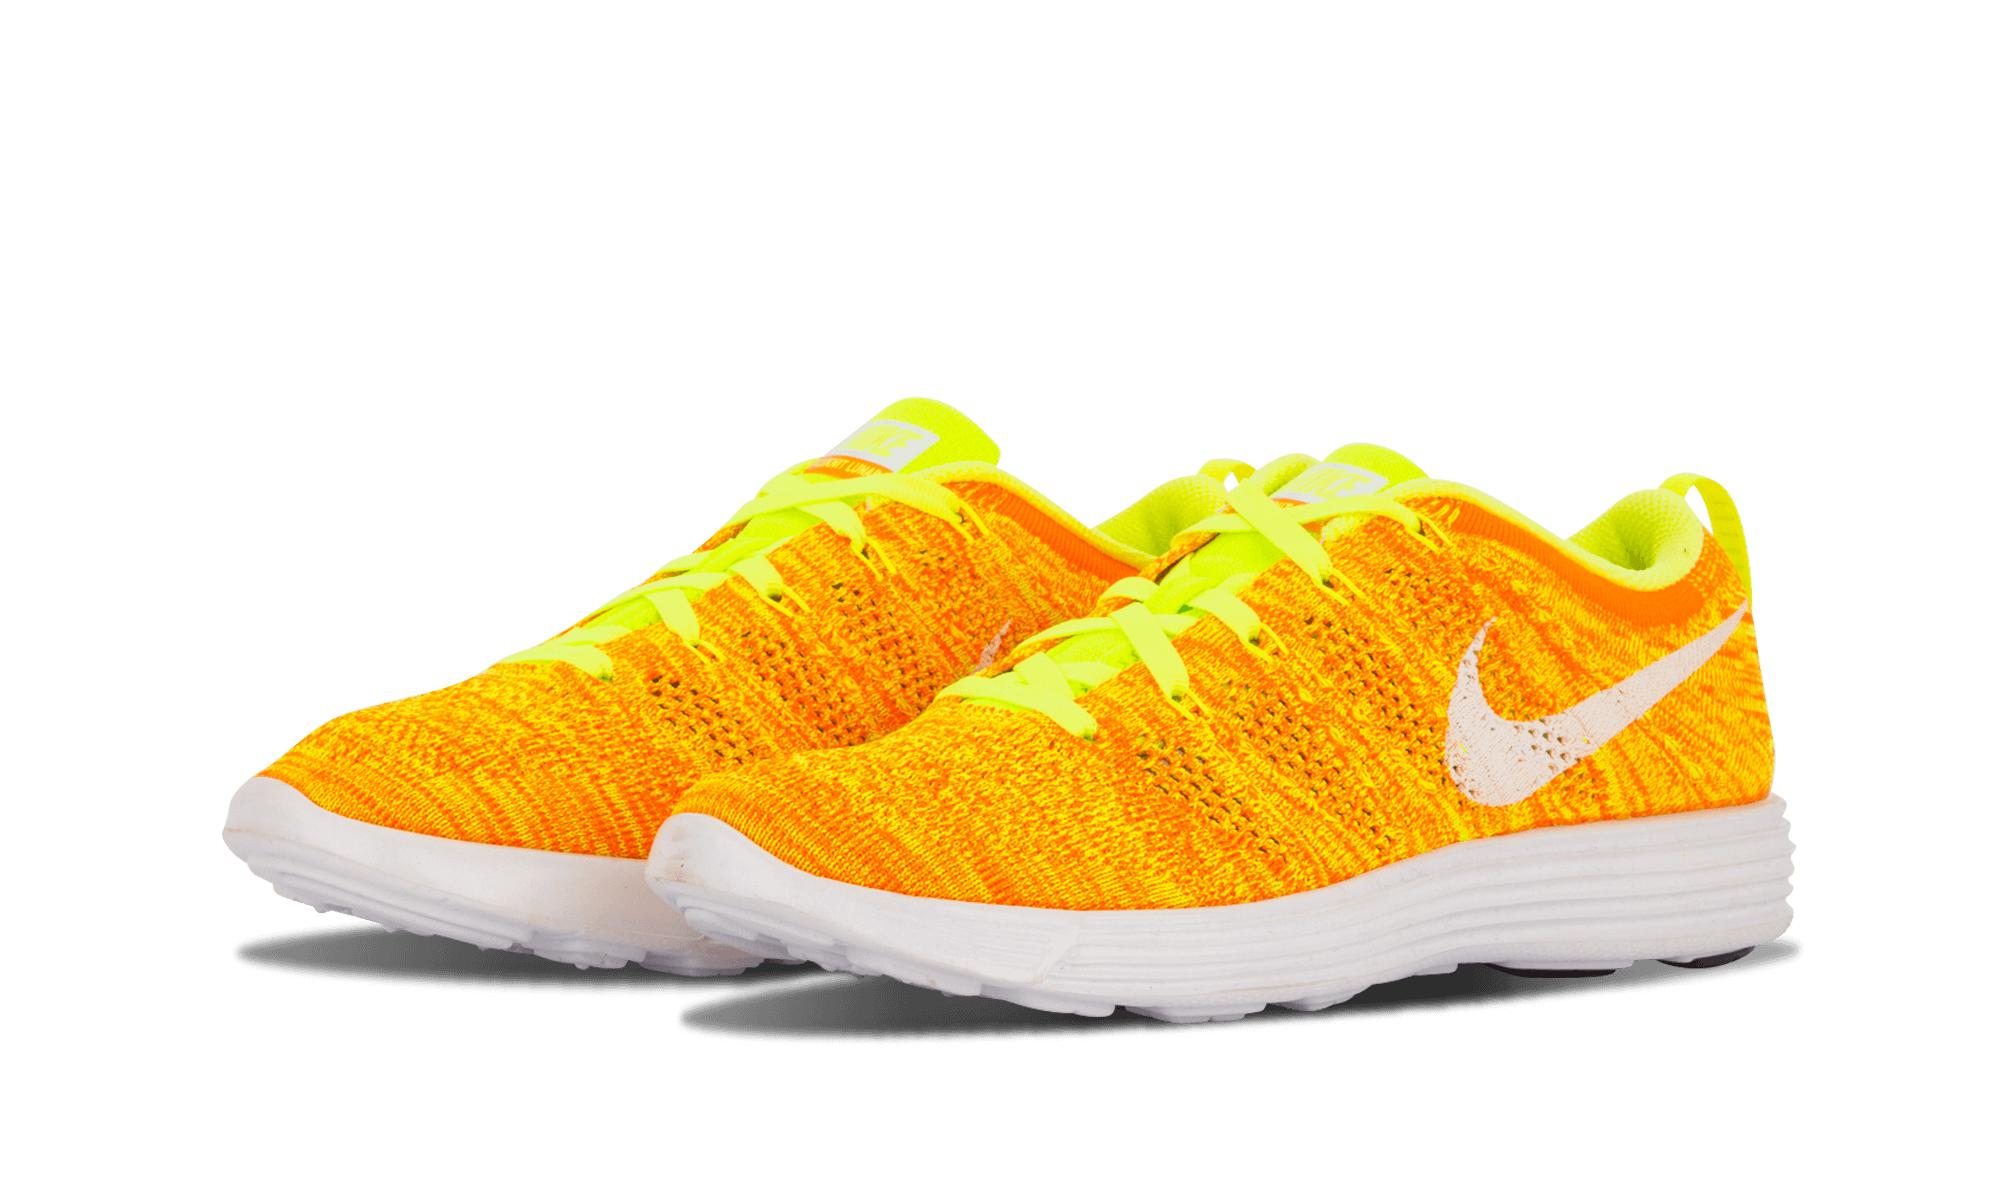 timeless design 7cc5a 8b4ad Lyst - Nike Womens Flyknit Trainer in Yellow